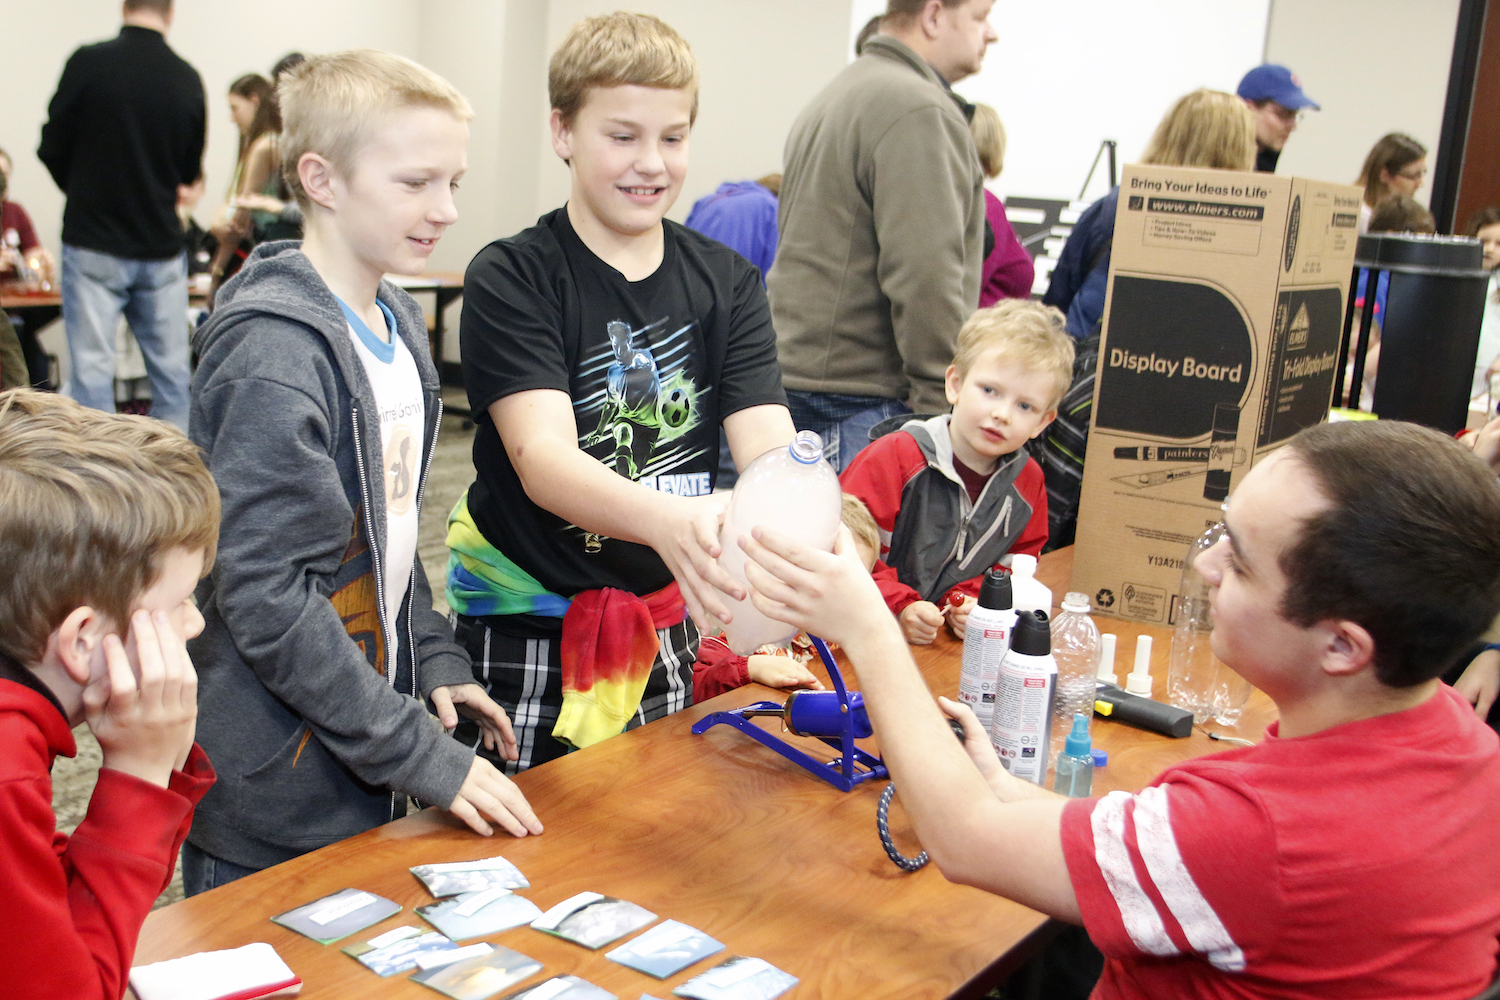 """Ryland Aksamit and Terry Glantz, both of Lincoln, push """"fog"""" out of a bottle during the 17th annual Weatherfest on Saturday, April 1, 2017, at Nebraska Innovation Campus. At right, Aiden Powers of Ceresco looks on. 